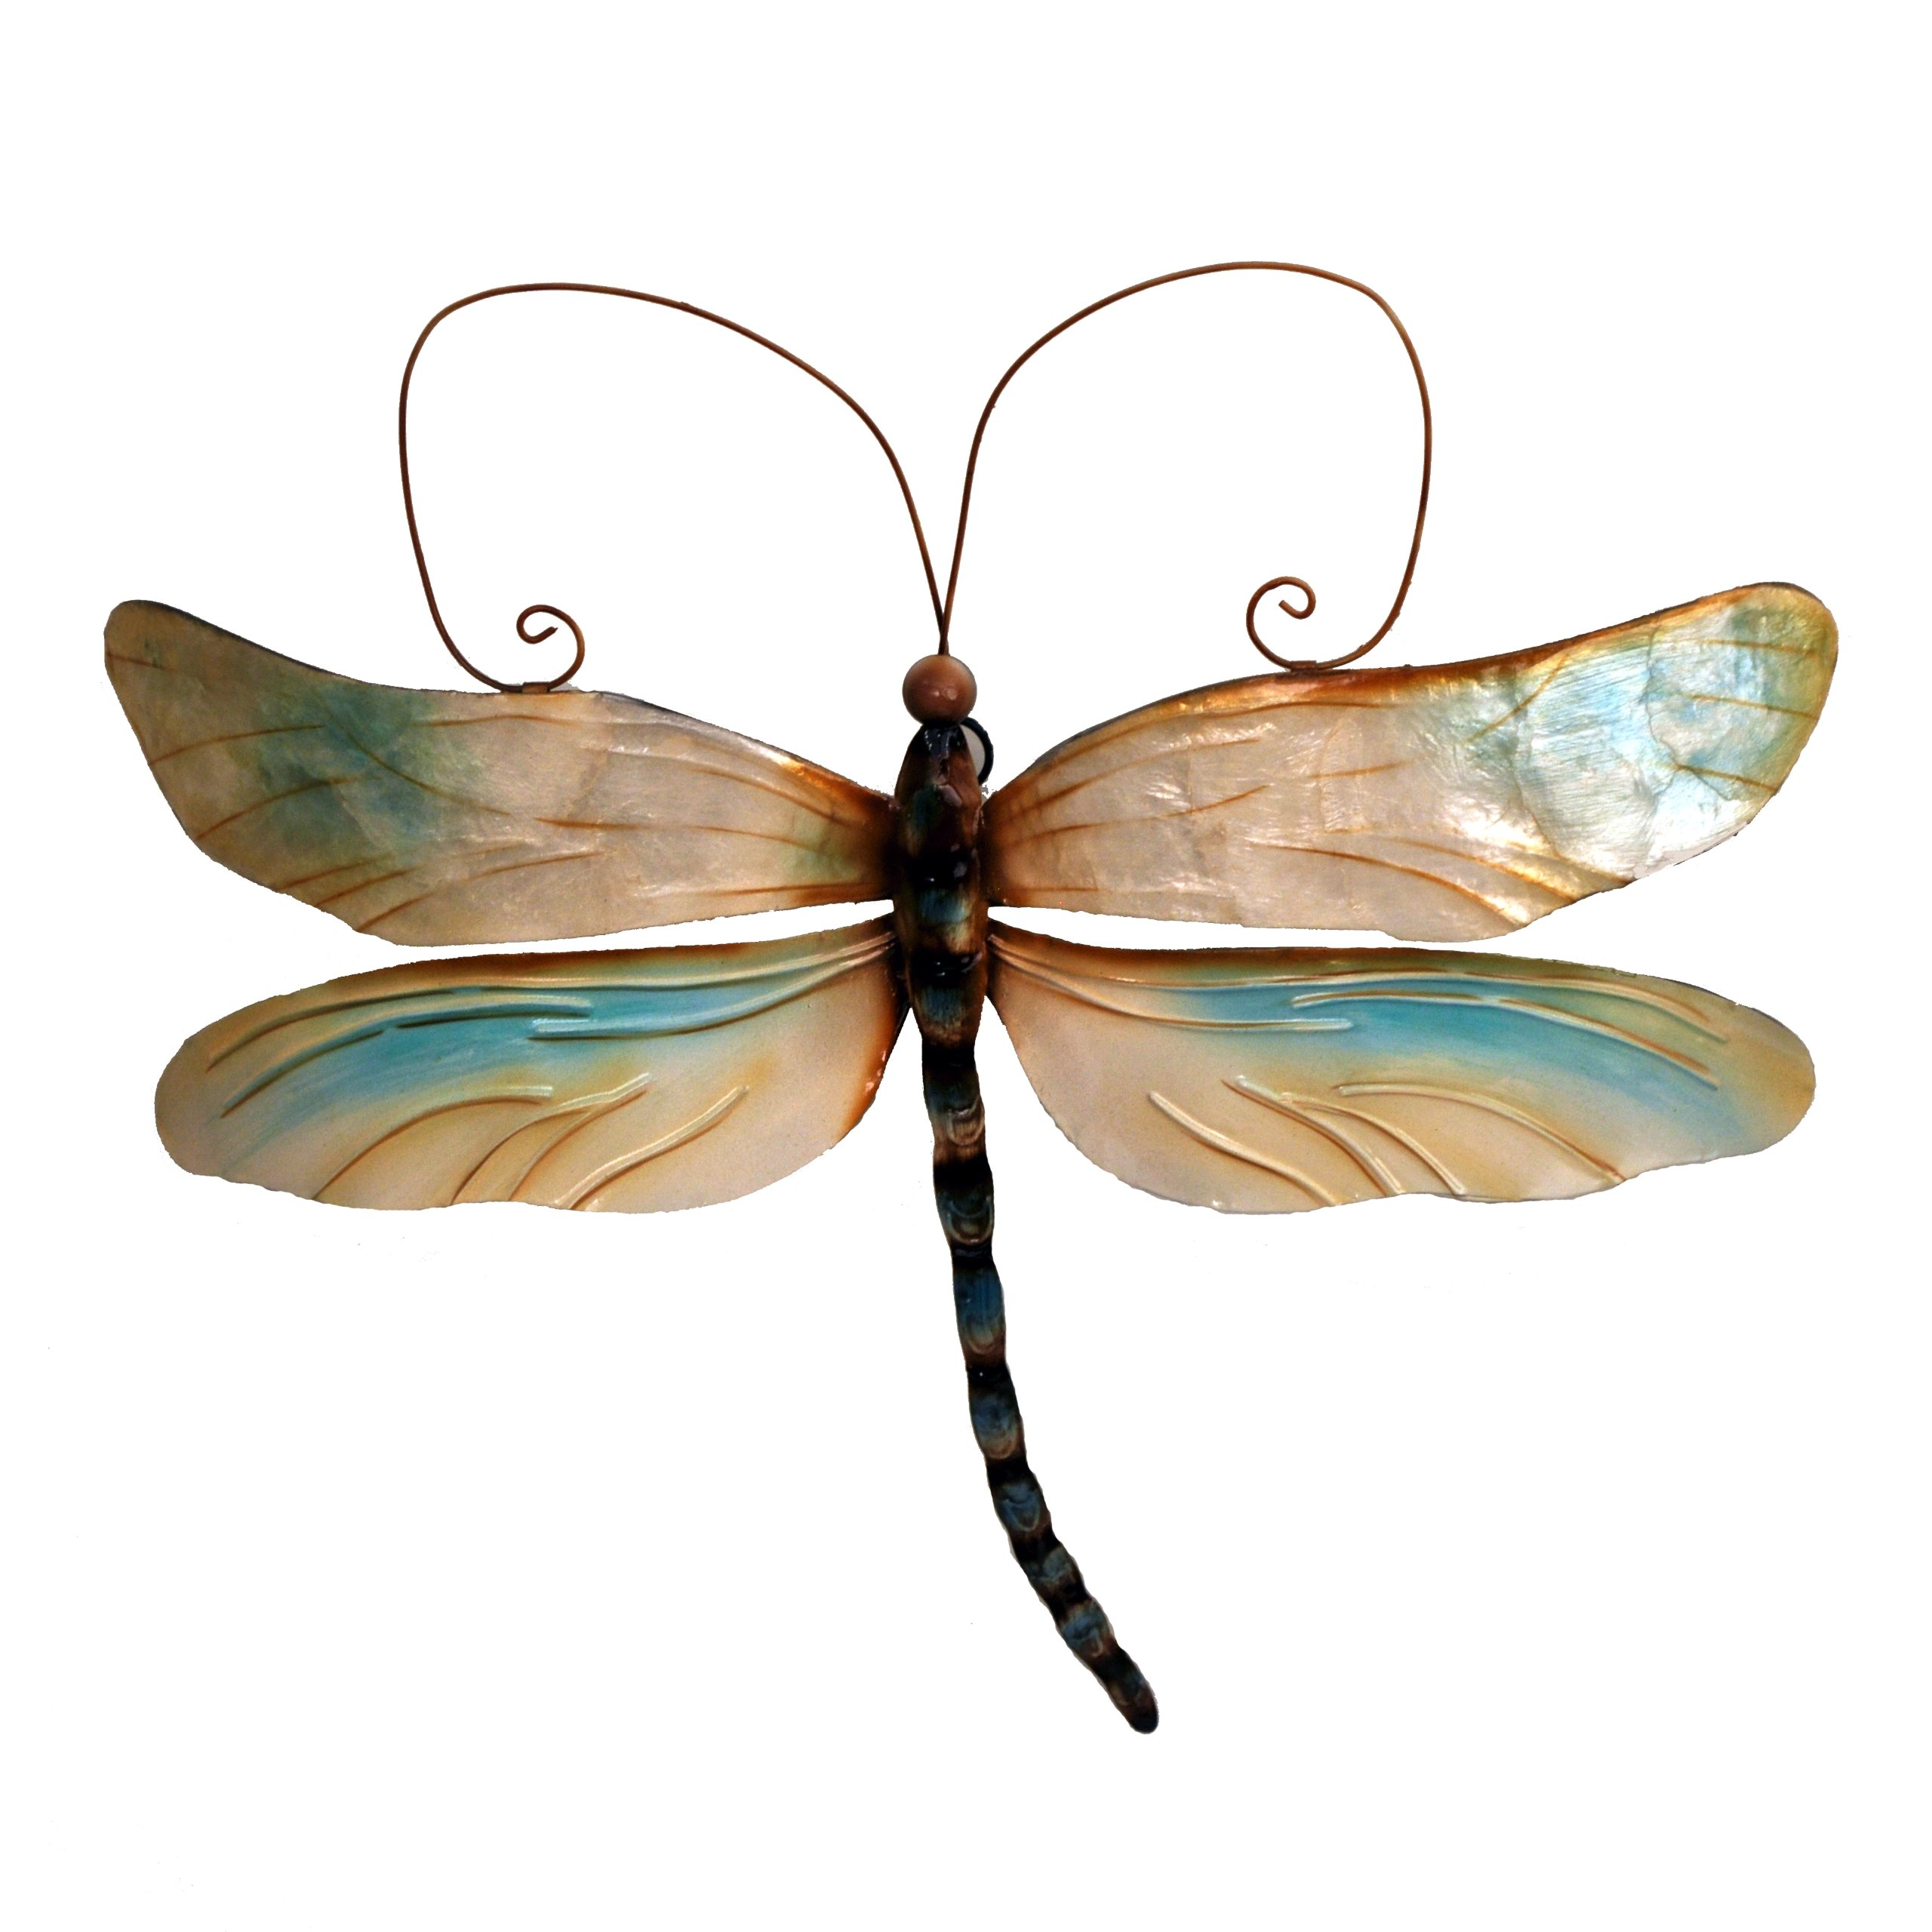 Eangee m711046 Wall Dragonfly Pearl Metal Art Piece